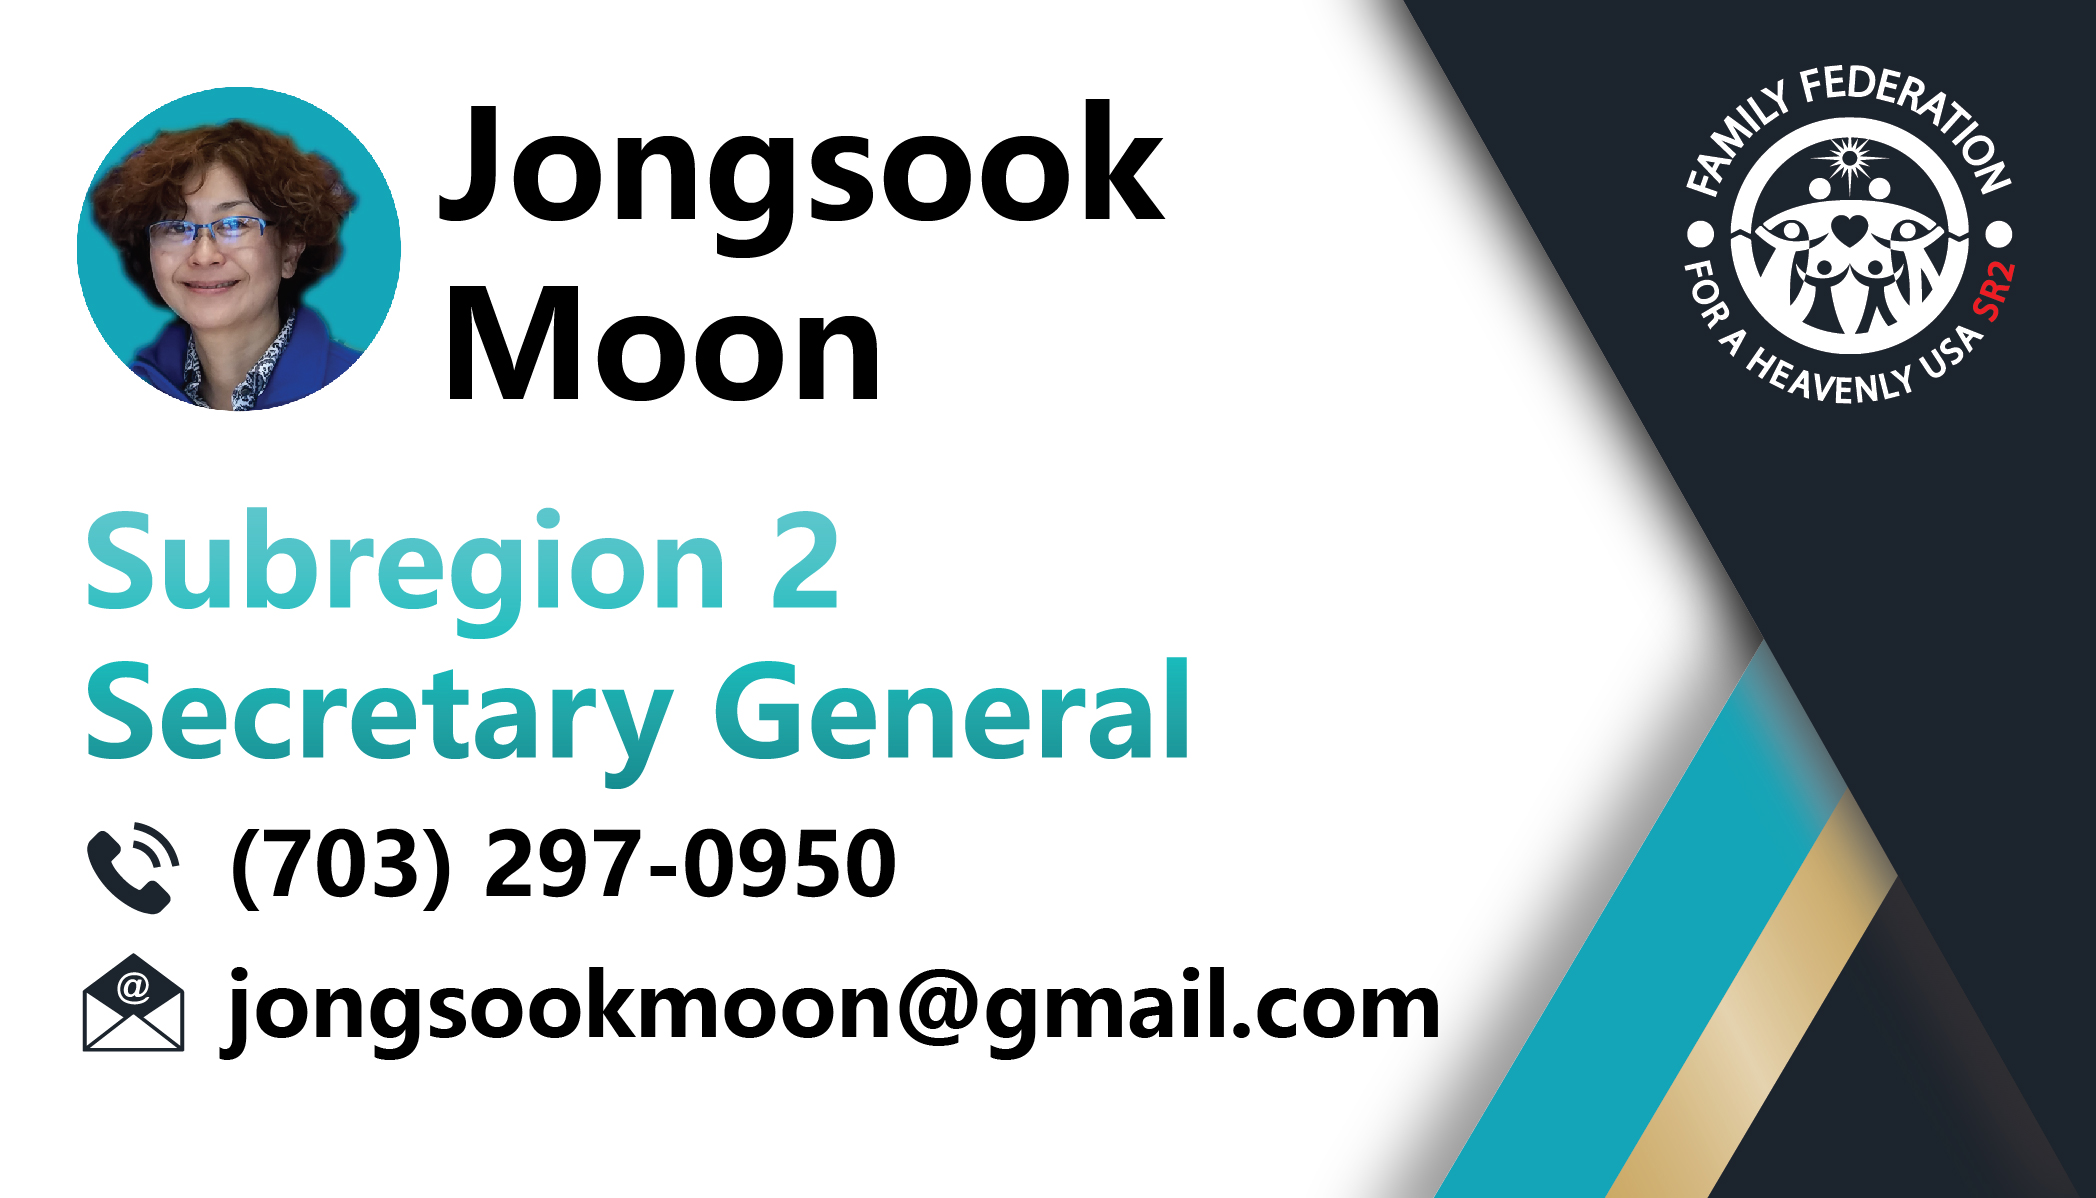 Jongsook Business Card-01.jpg